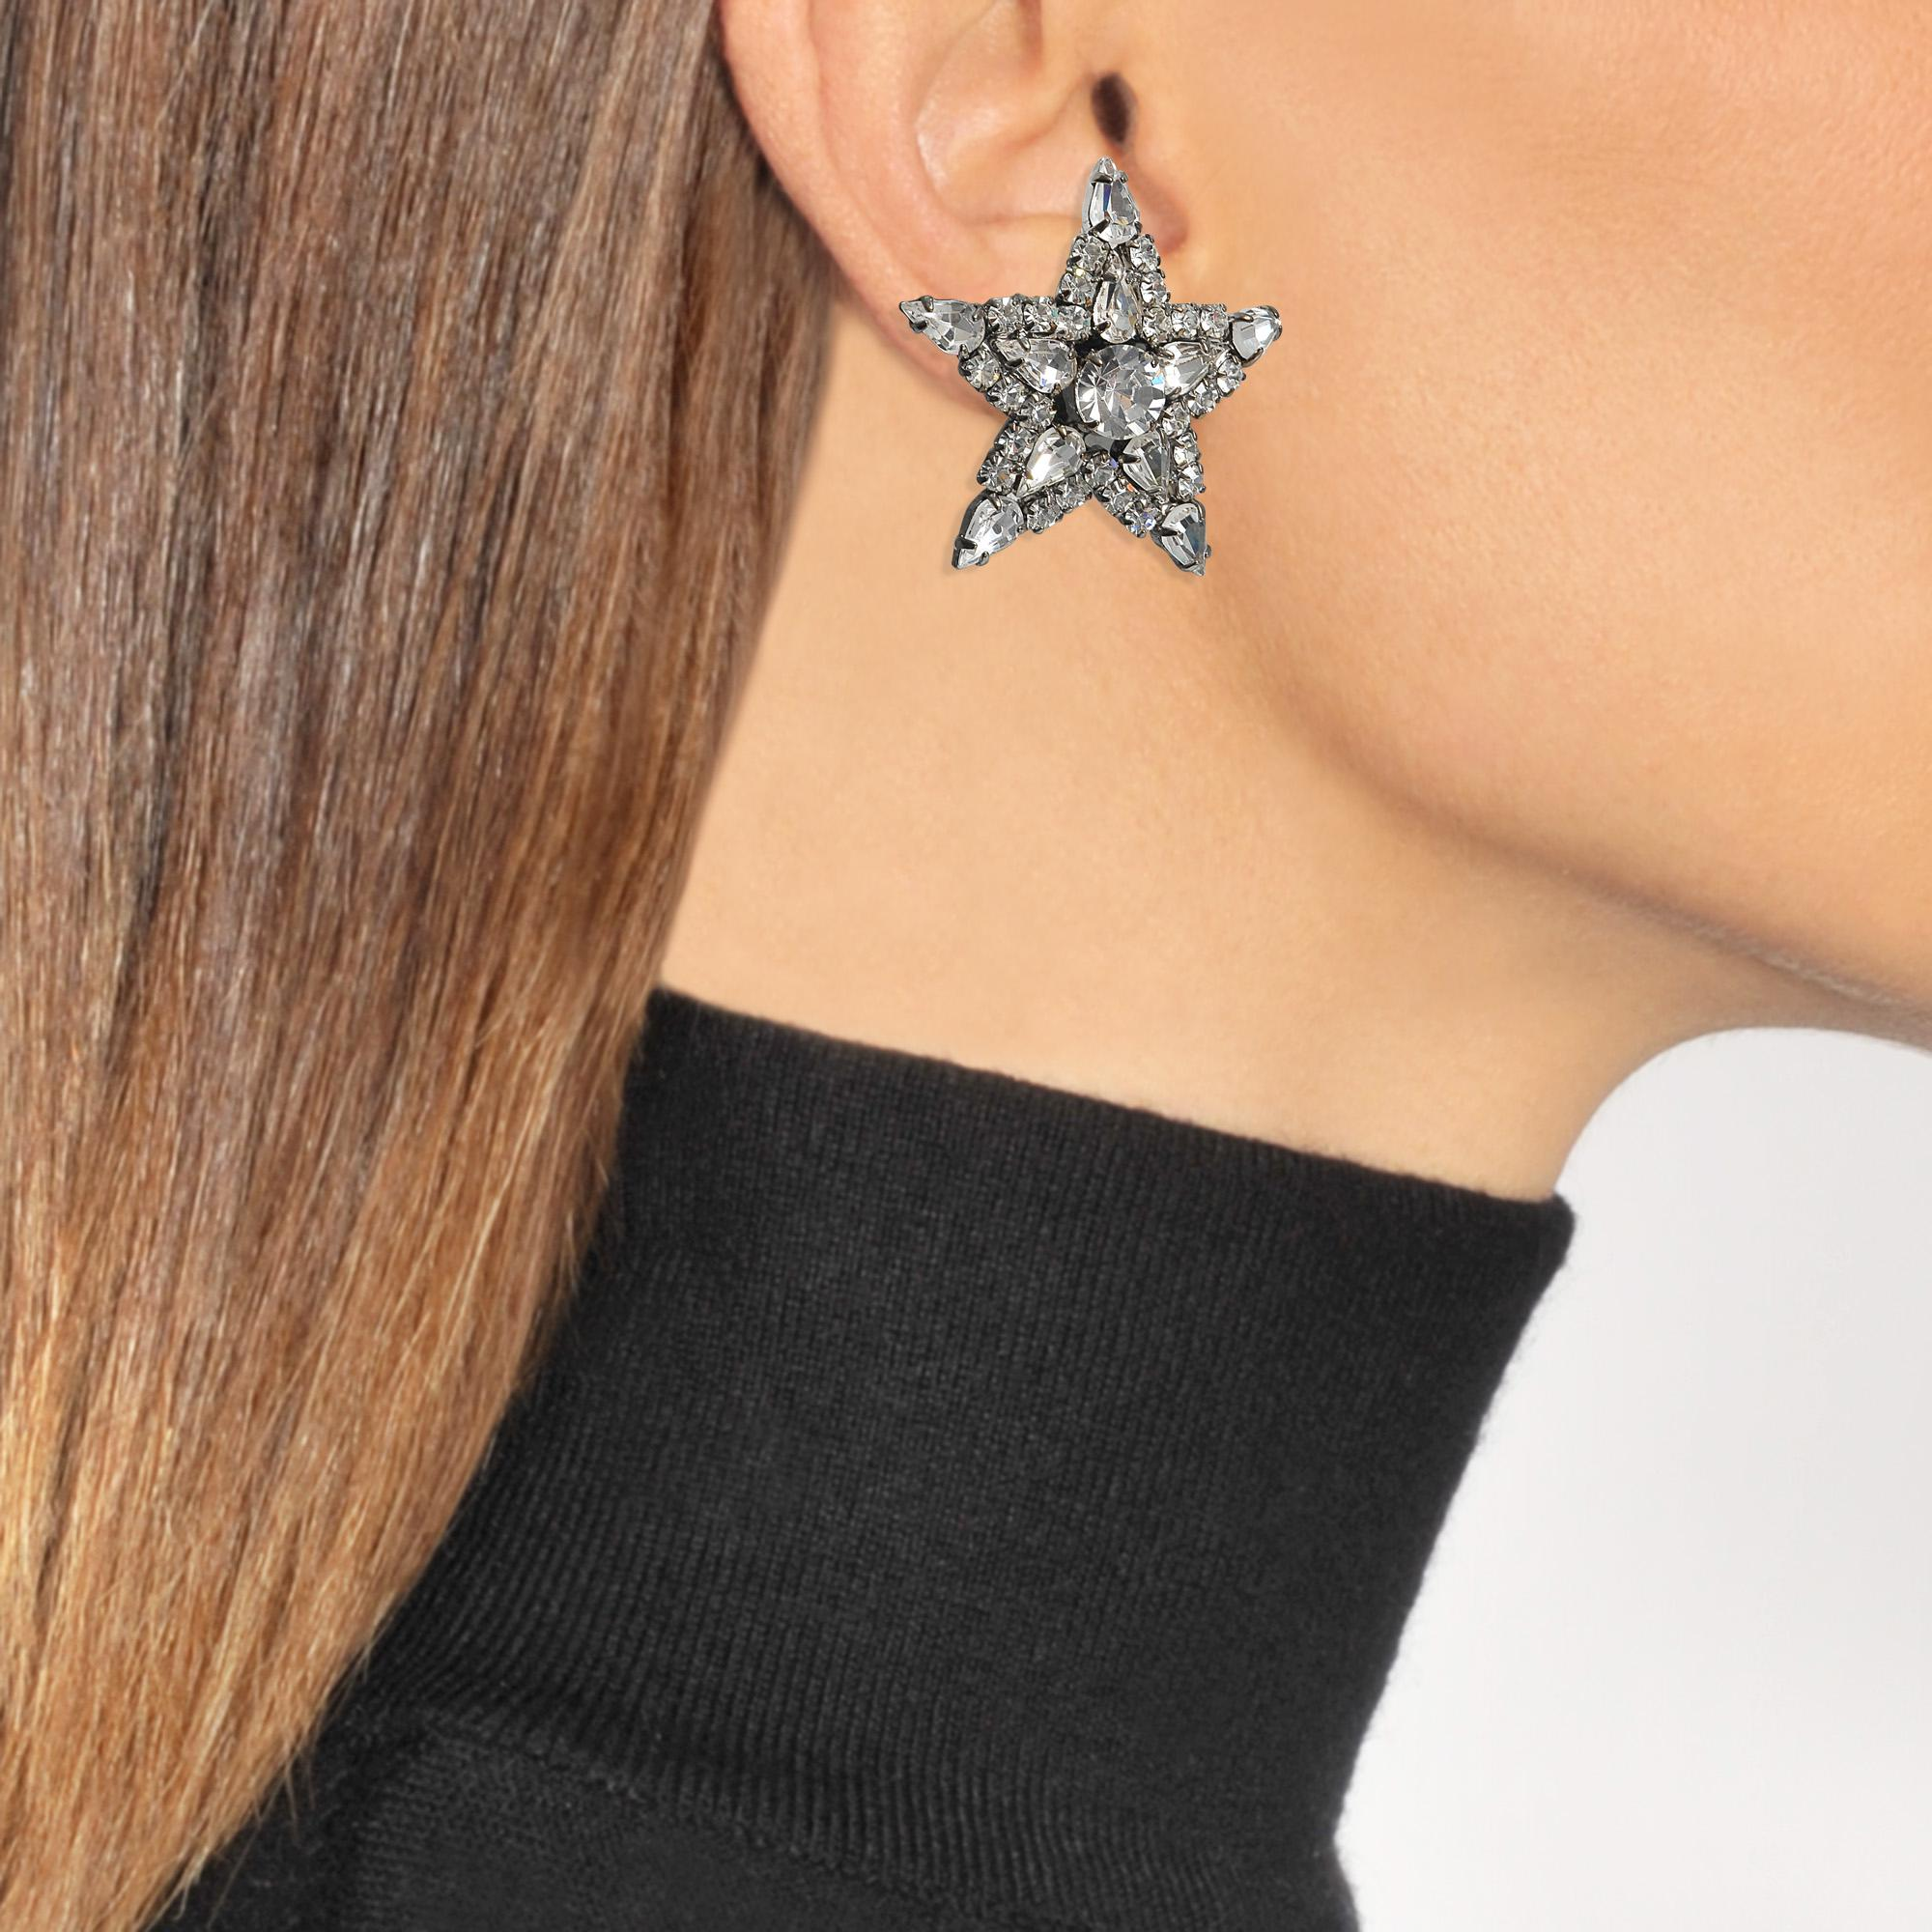 Helene Zubeldia Exclusivity - Asymmetrical Star and Moon Crystals Cascade Earrings in Ruthenium and Crystals ml9cZ9zF